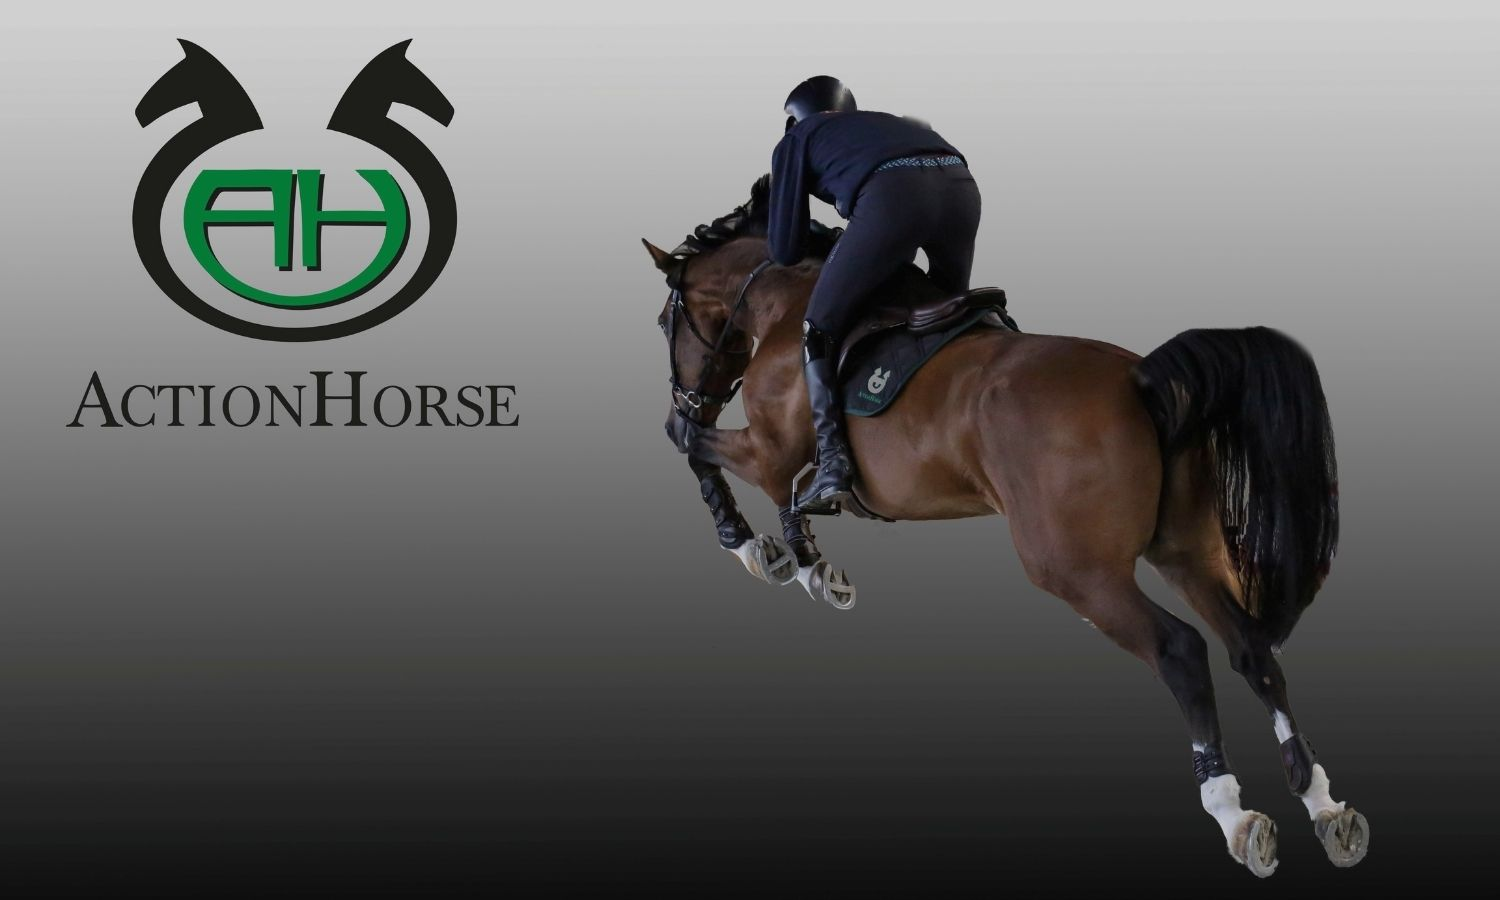 Action Horse by Le Selle Italiane